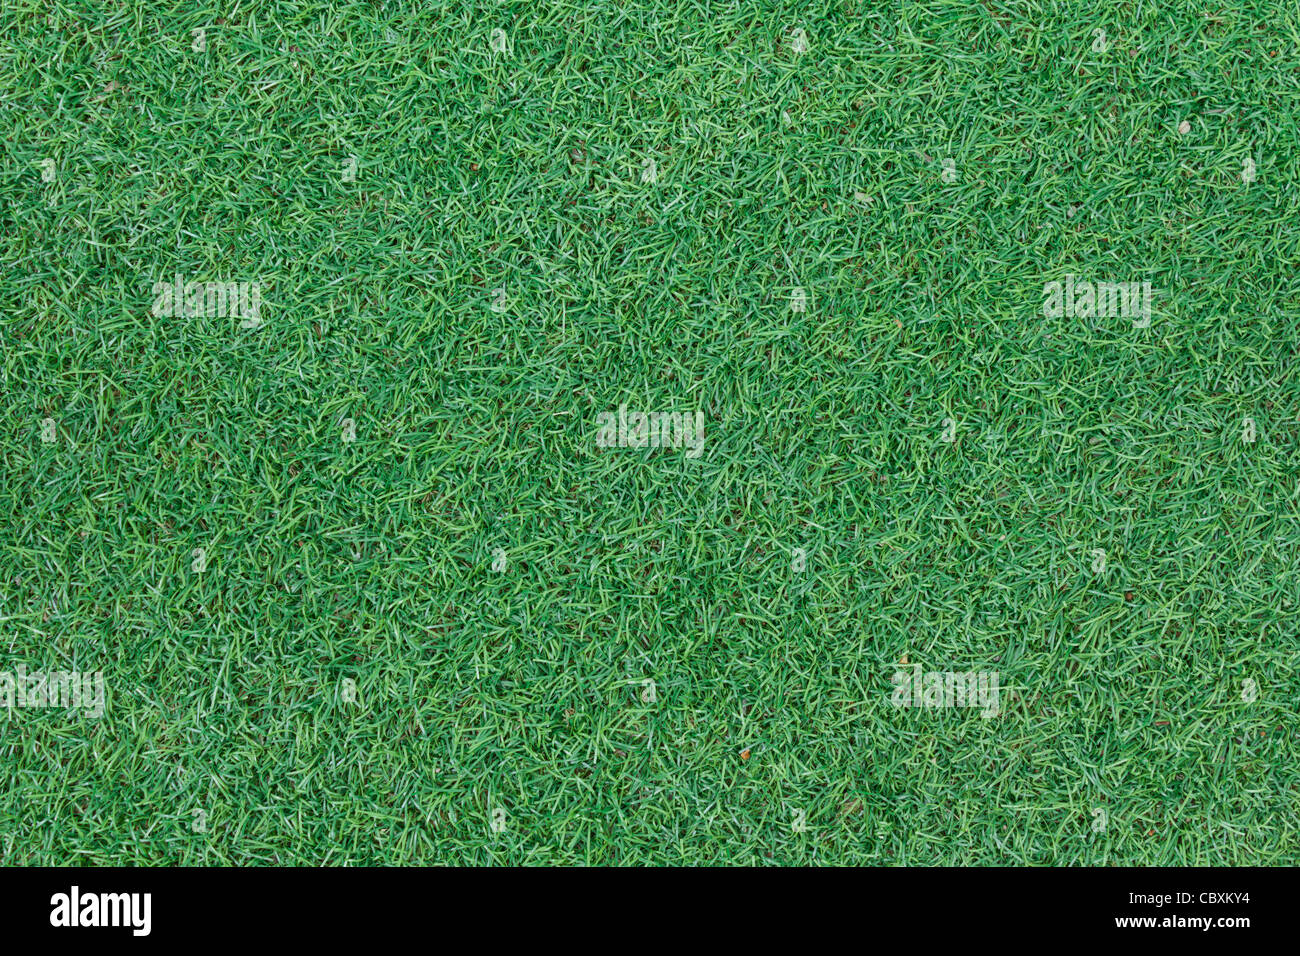 Background texture with fake grass in a public children playground, top view - Stock Image